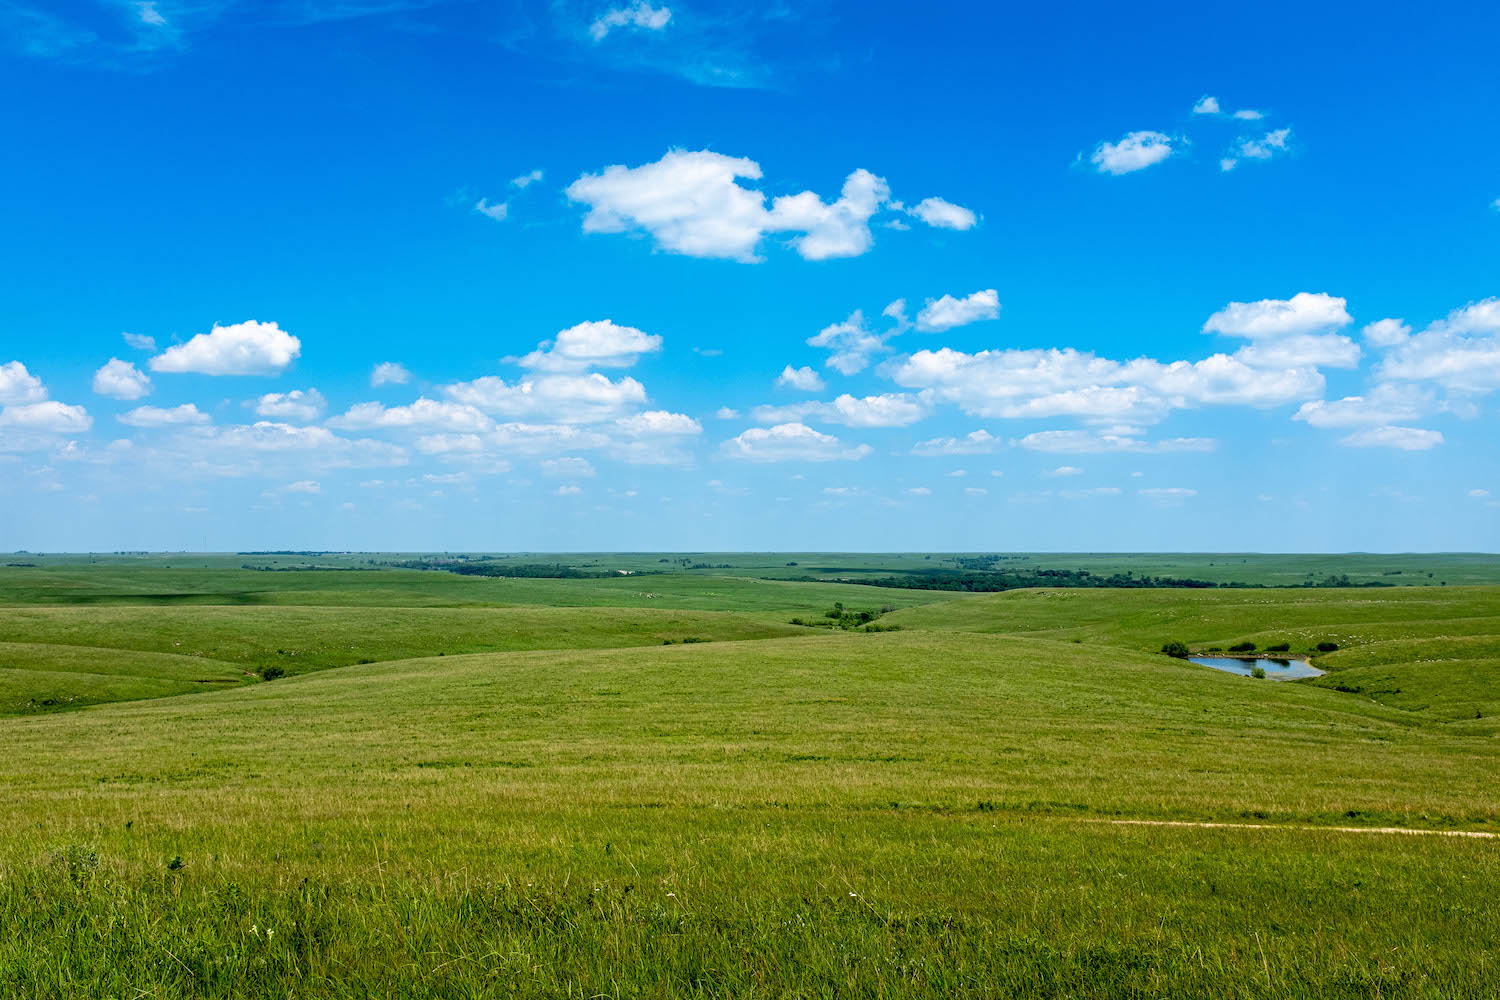 Image: I shot this in the Tallgrass Prairie Nature Preserve in another part of Kansas. These clouds...